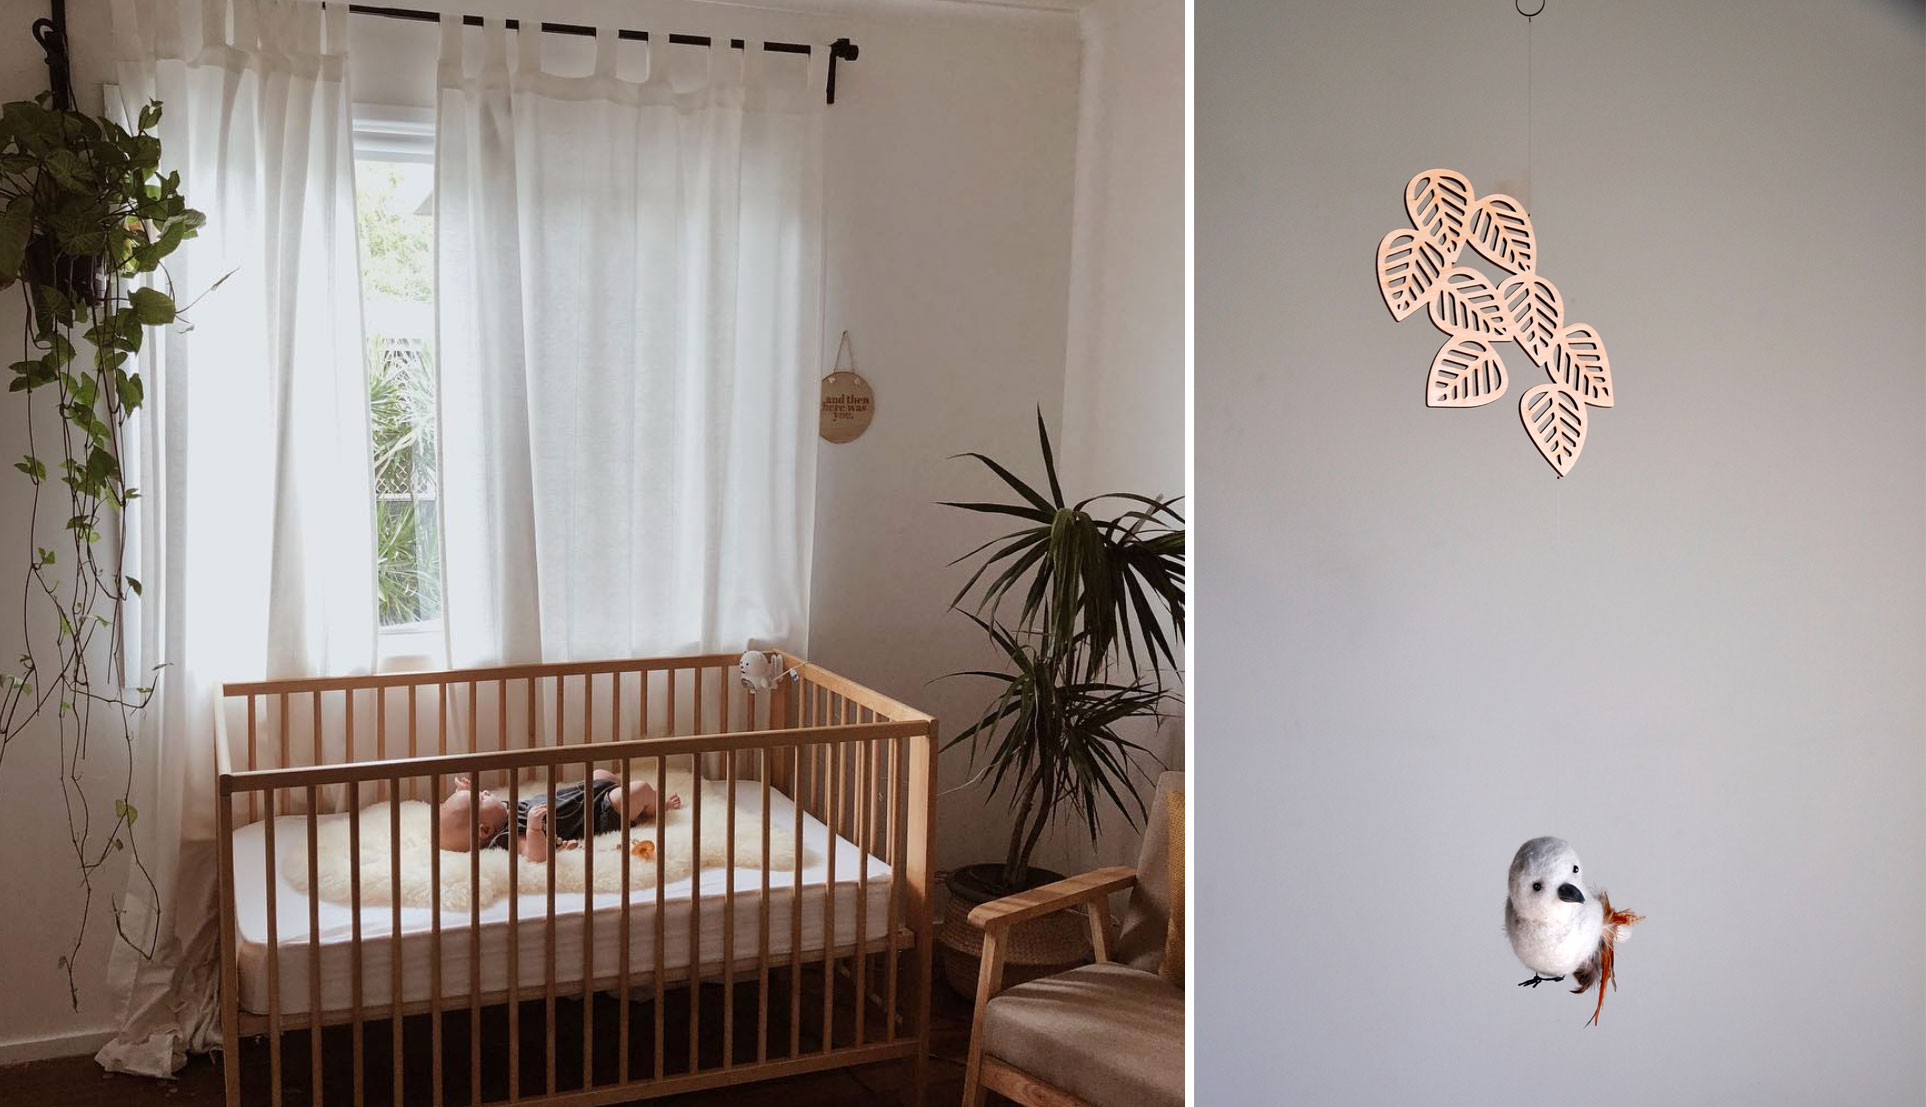 Nursery Room Style & Mobile Pairings